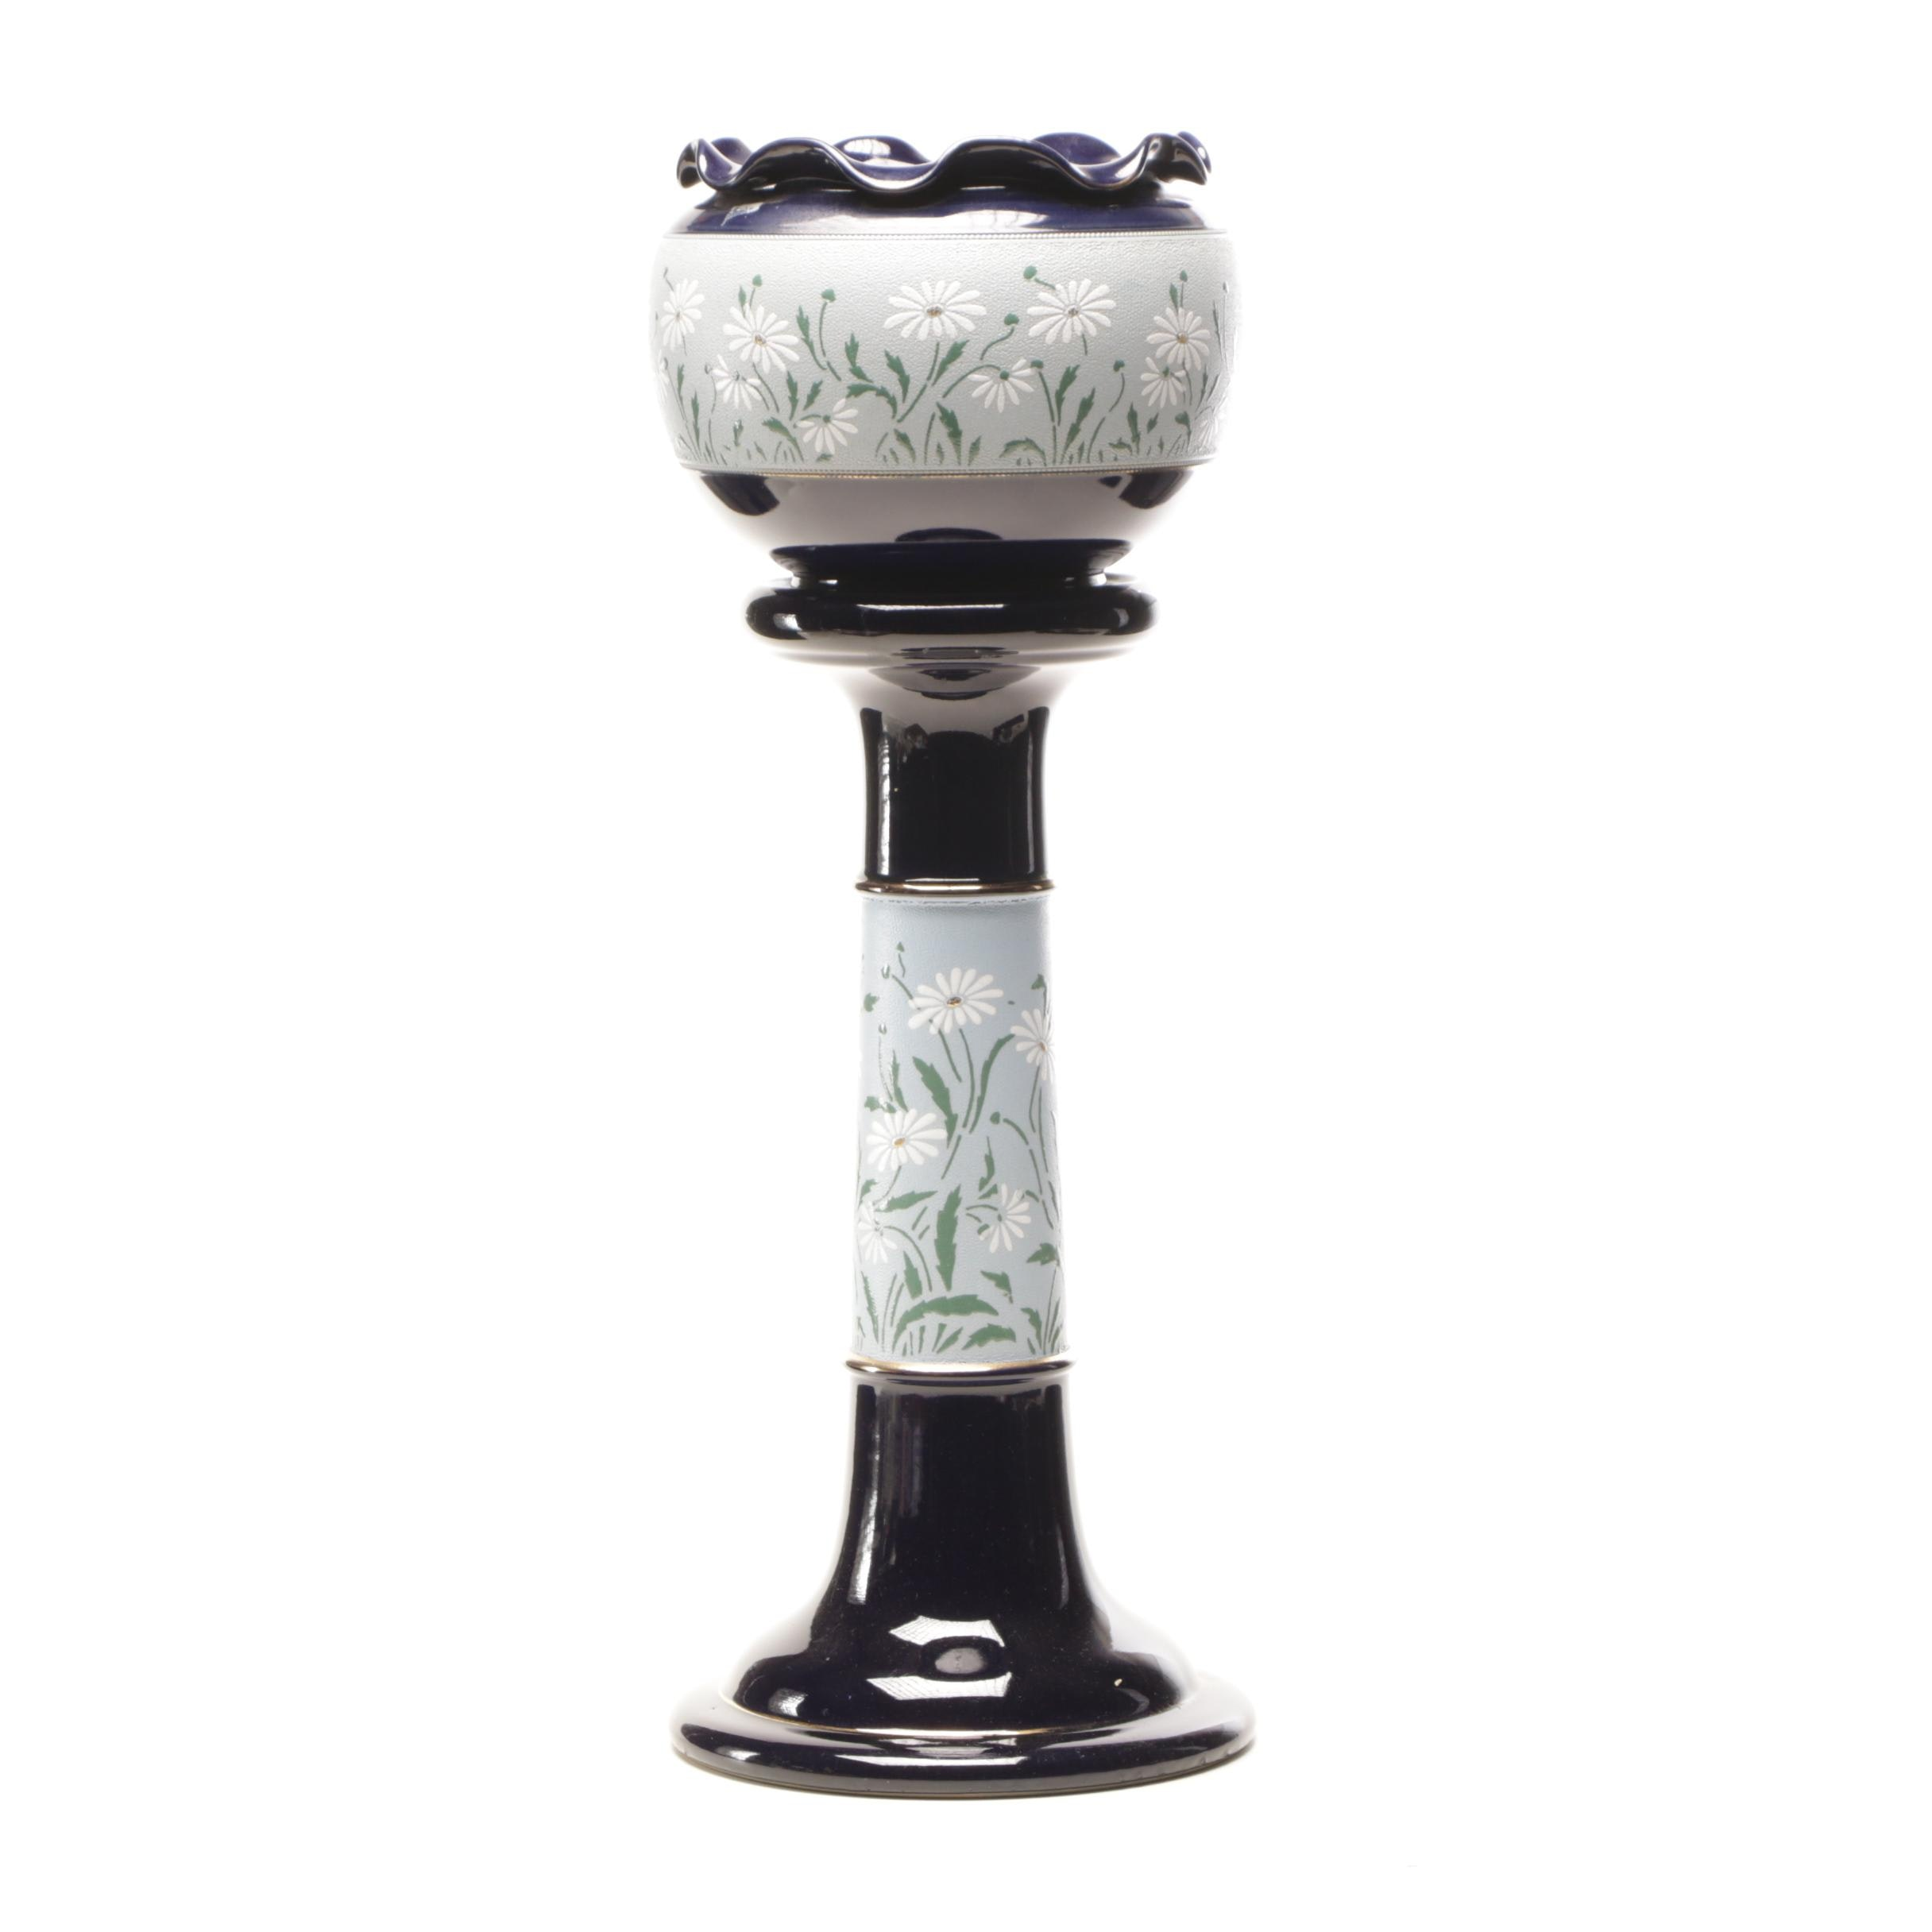 Langley Mill English Jardiniere and Pedestal, Early to Mid 20th Century